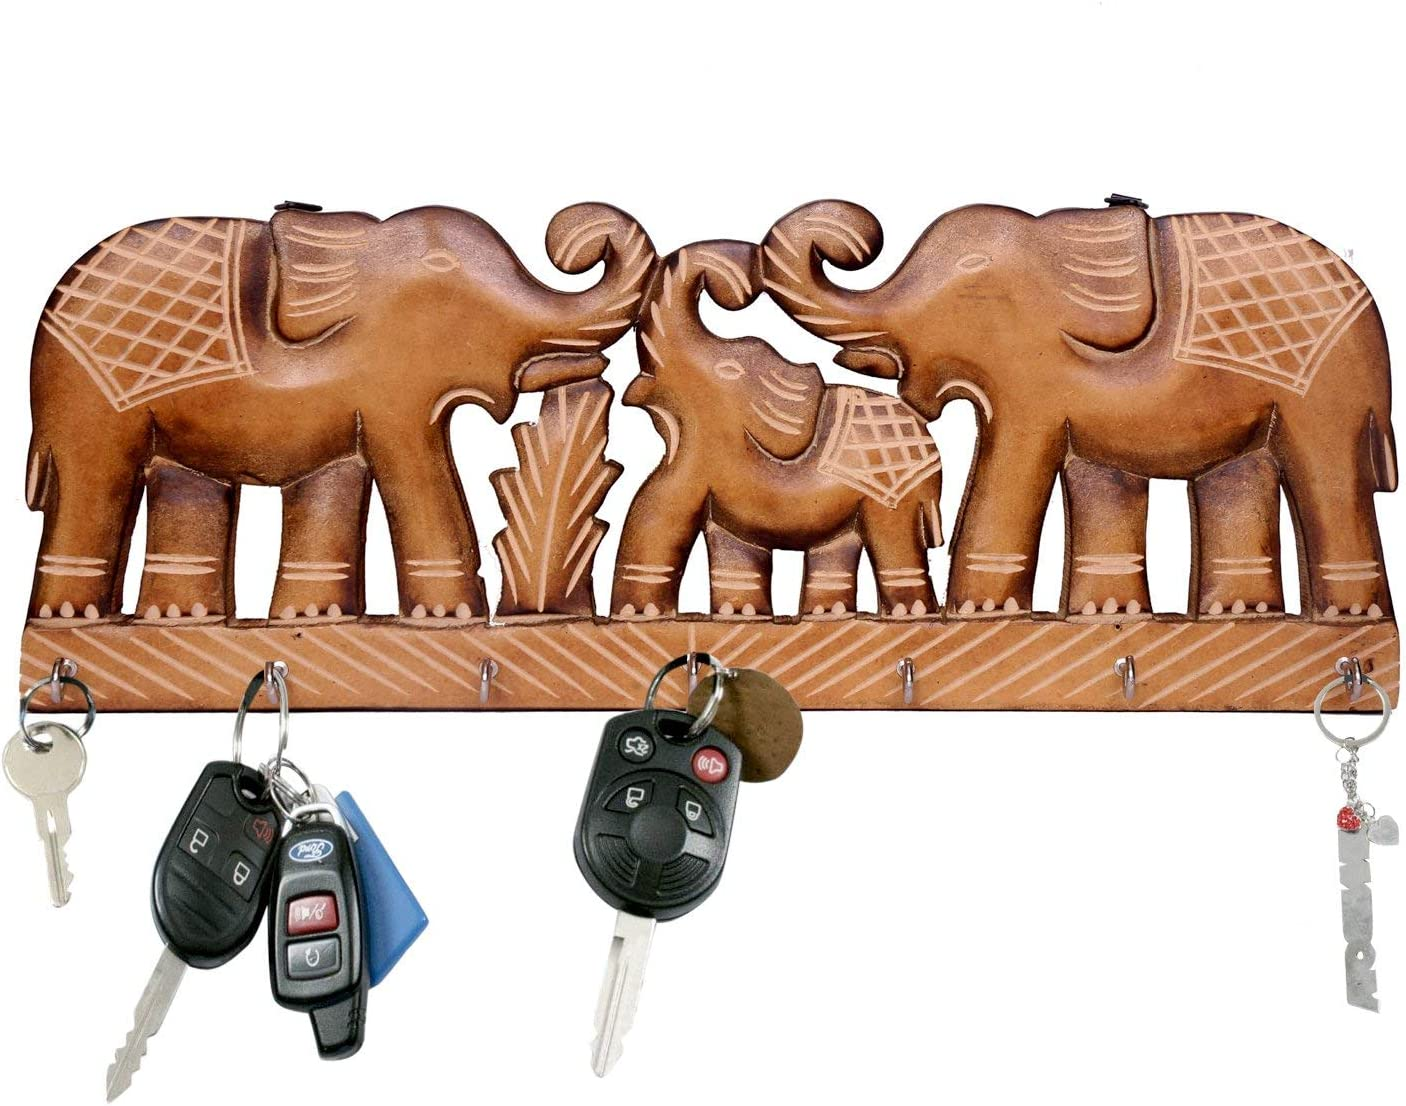 Amazon Com Willart Key Holder For The Home Hand Crafted Elephant Design Key Hooks For Wall Key Hangers Key Rack Vintage Design Home Decor 15 5 X 6 X 1 Inch Home Improvement